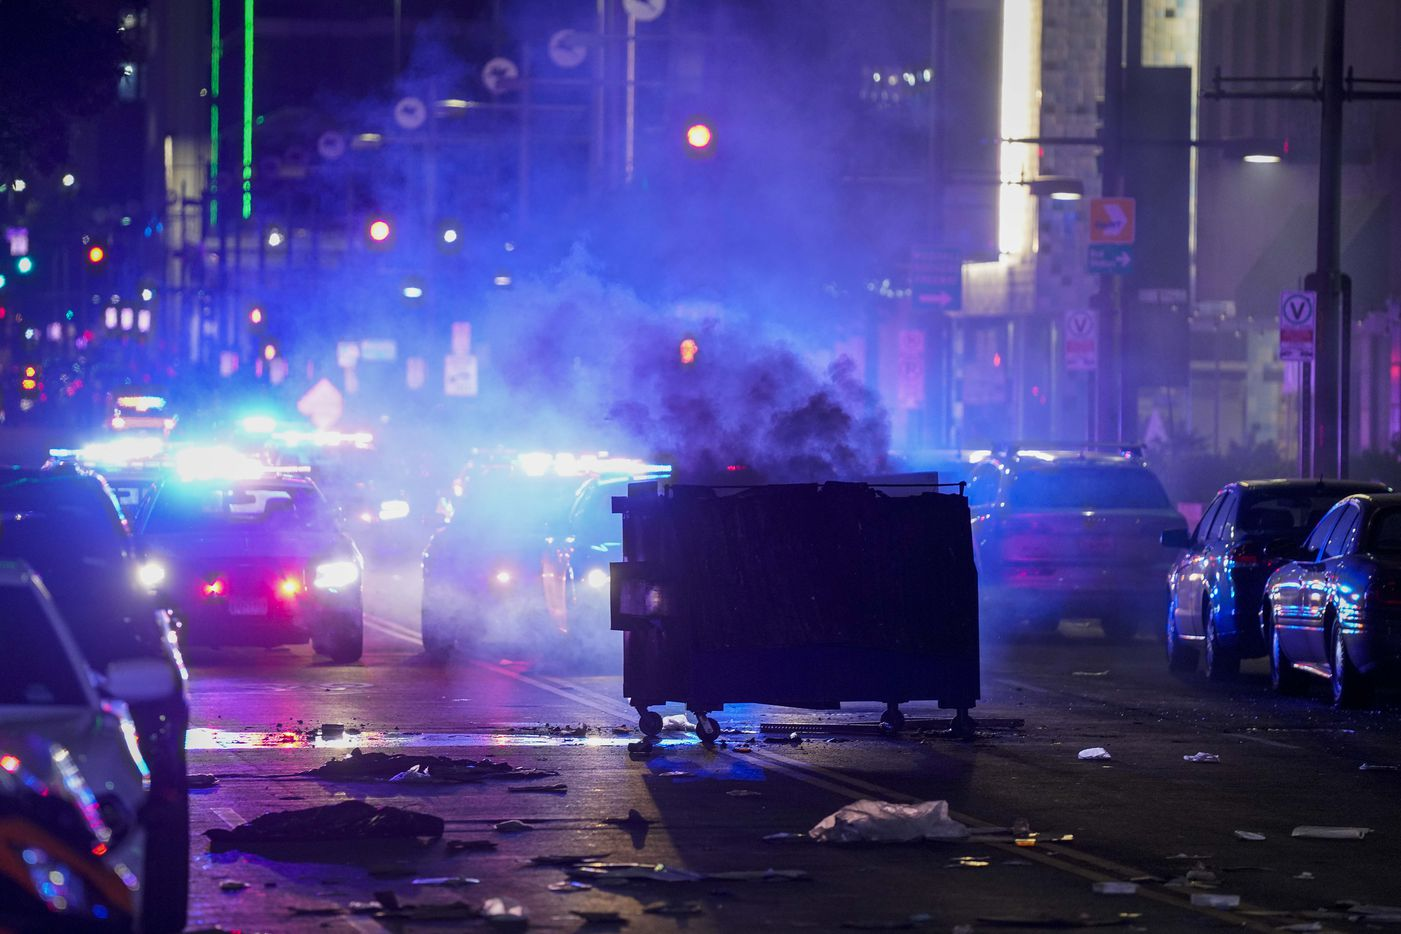 A dumpster smolders as debris covers the middle of Main Street downtown following a protest against police brutality in the early morning hours of Saturday, May 30, 2020, in Dallas.